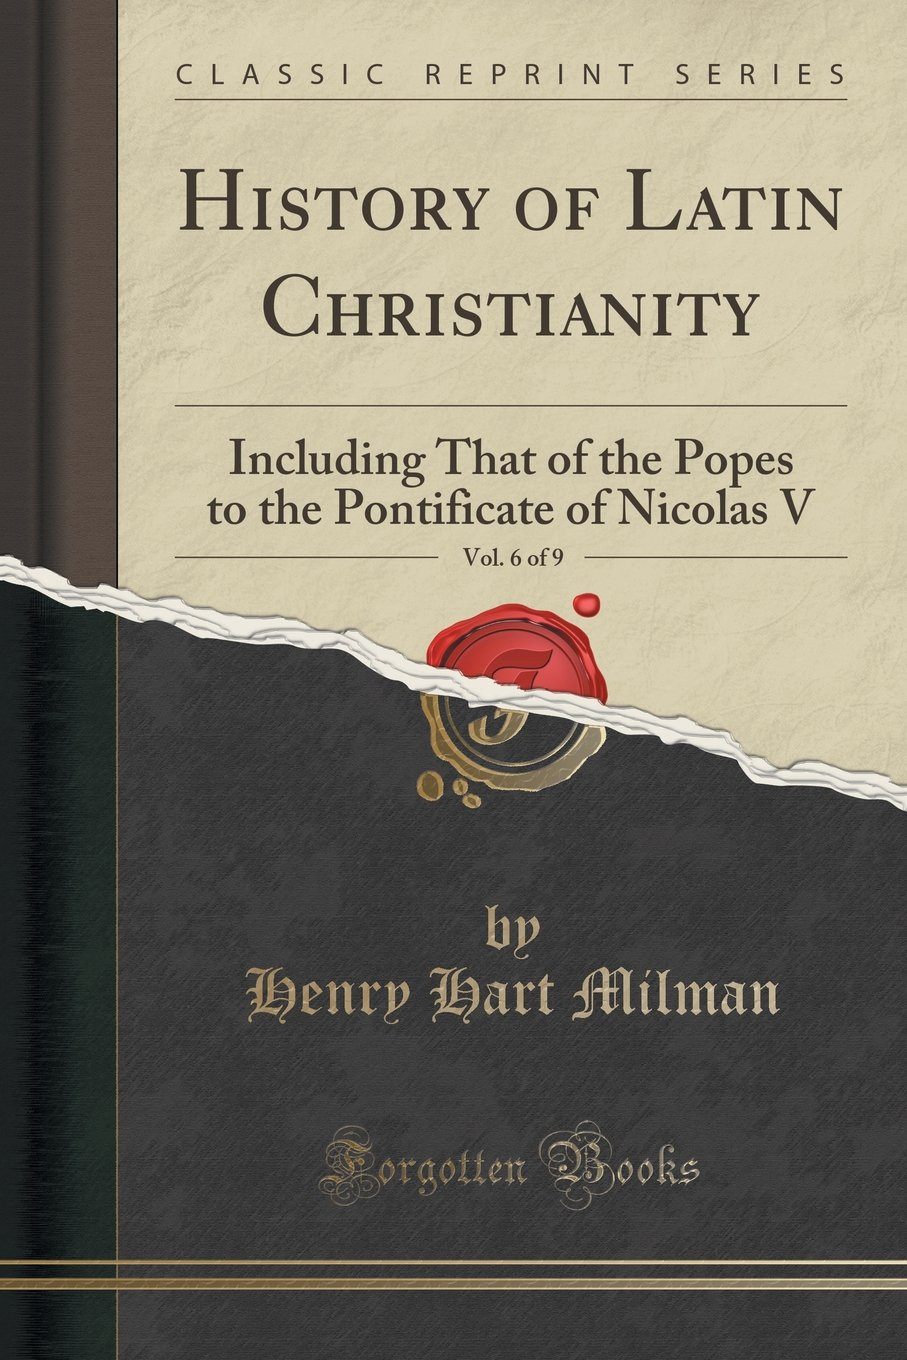 History of Latin Christianity, Vol. 6 of 9: Including That of the Popes to the Pontificate of Nicolas V (Classic Reprint) pdf epub